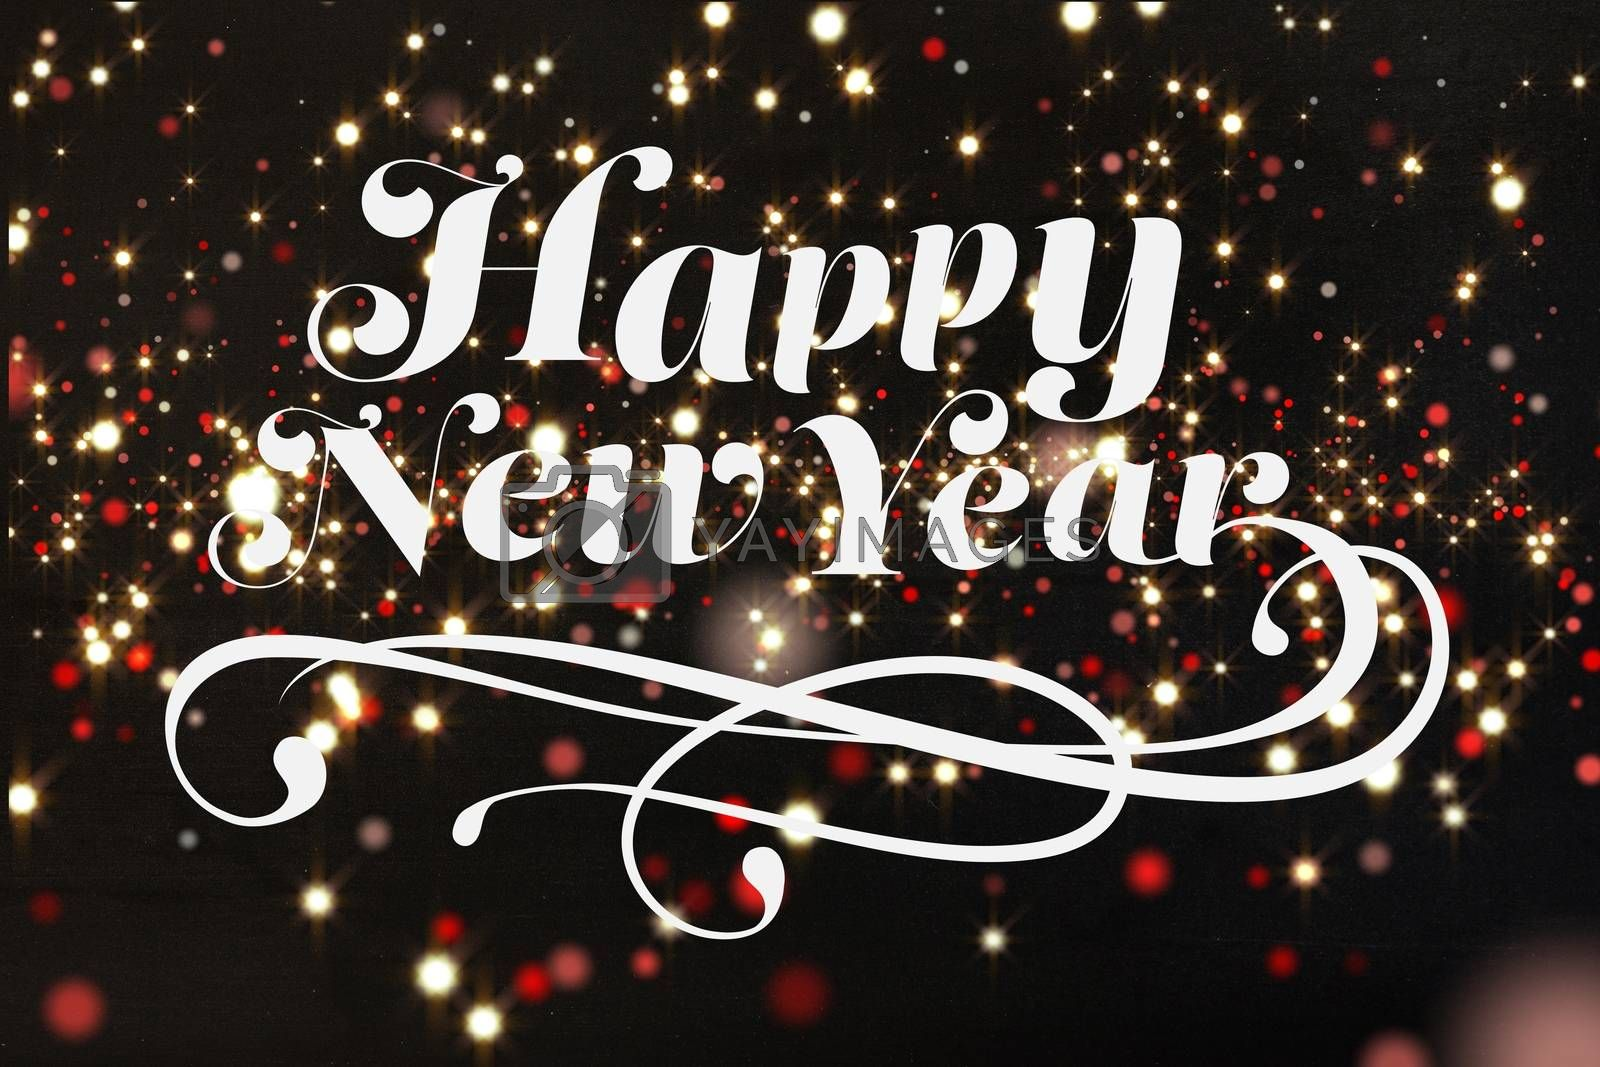 Composite image of Happy new year in a black background